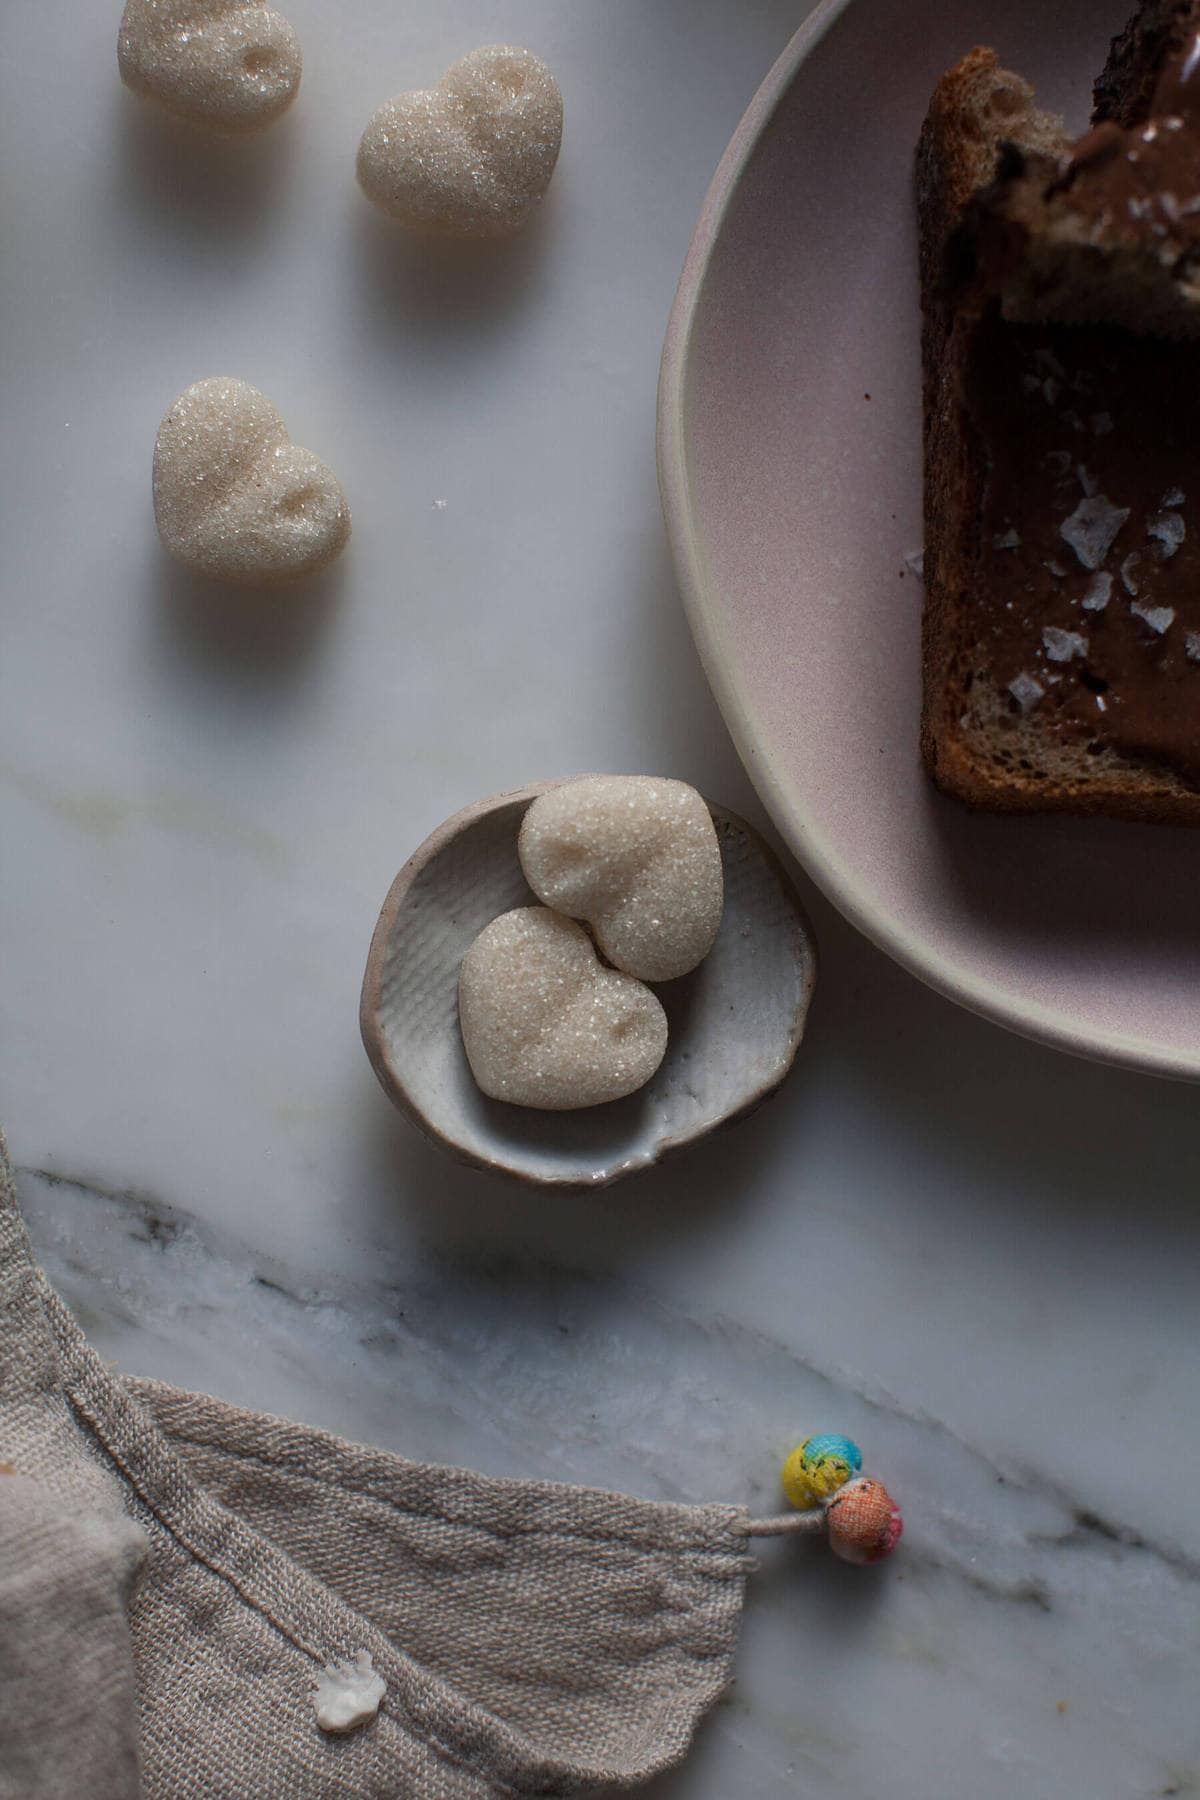 Homemade Sugar Cubes (Great Gift!)